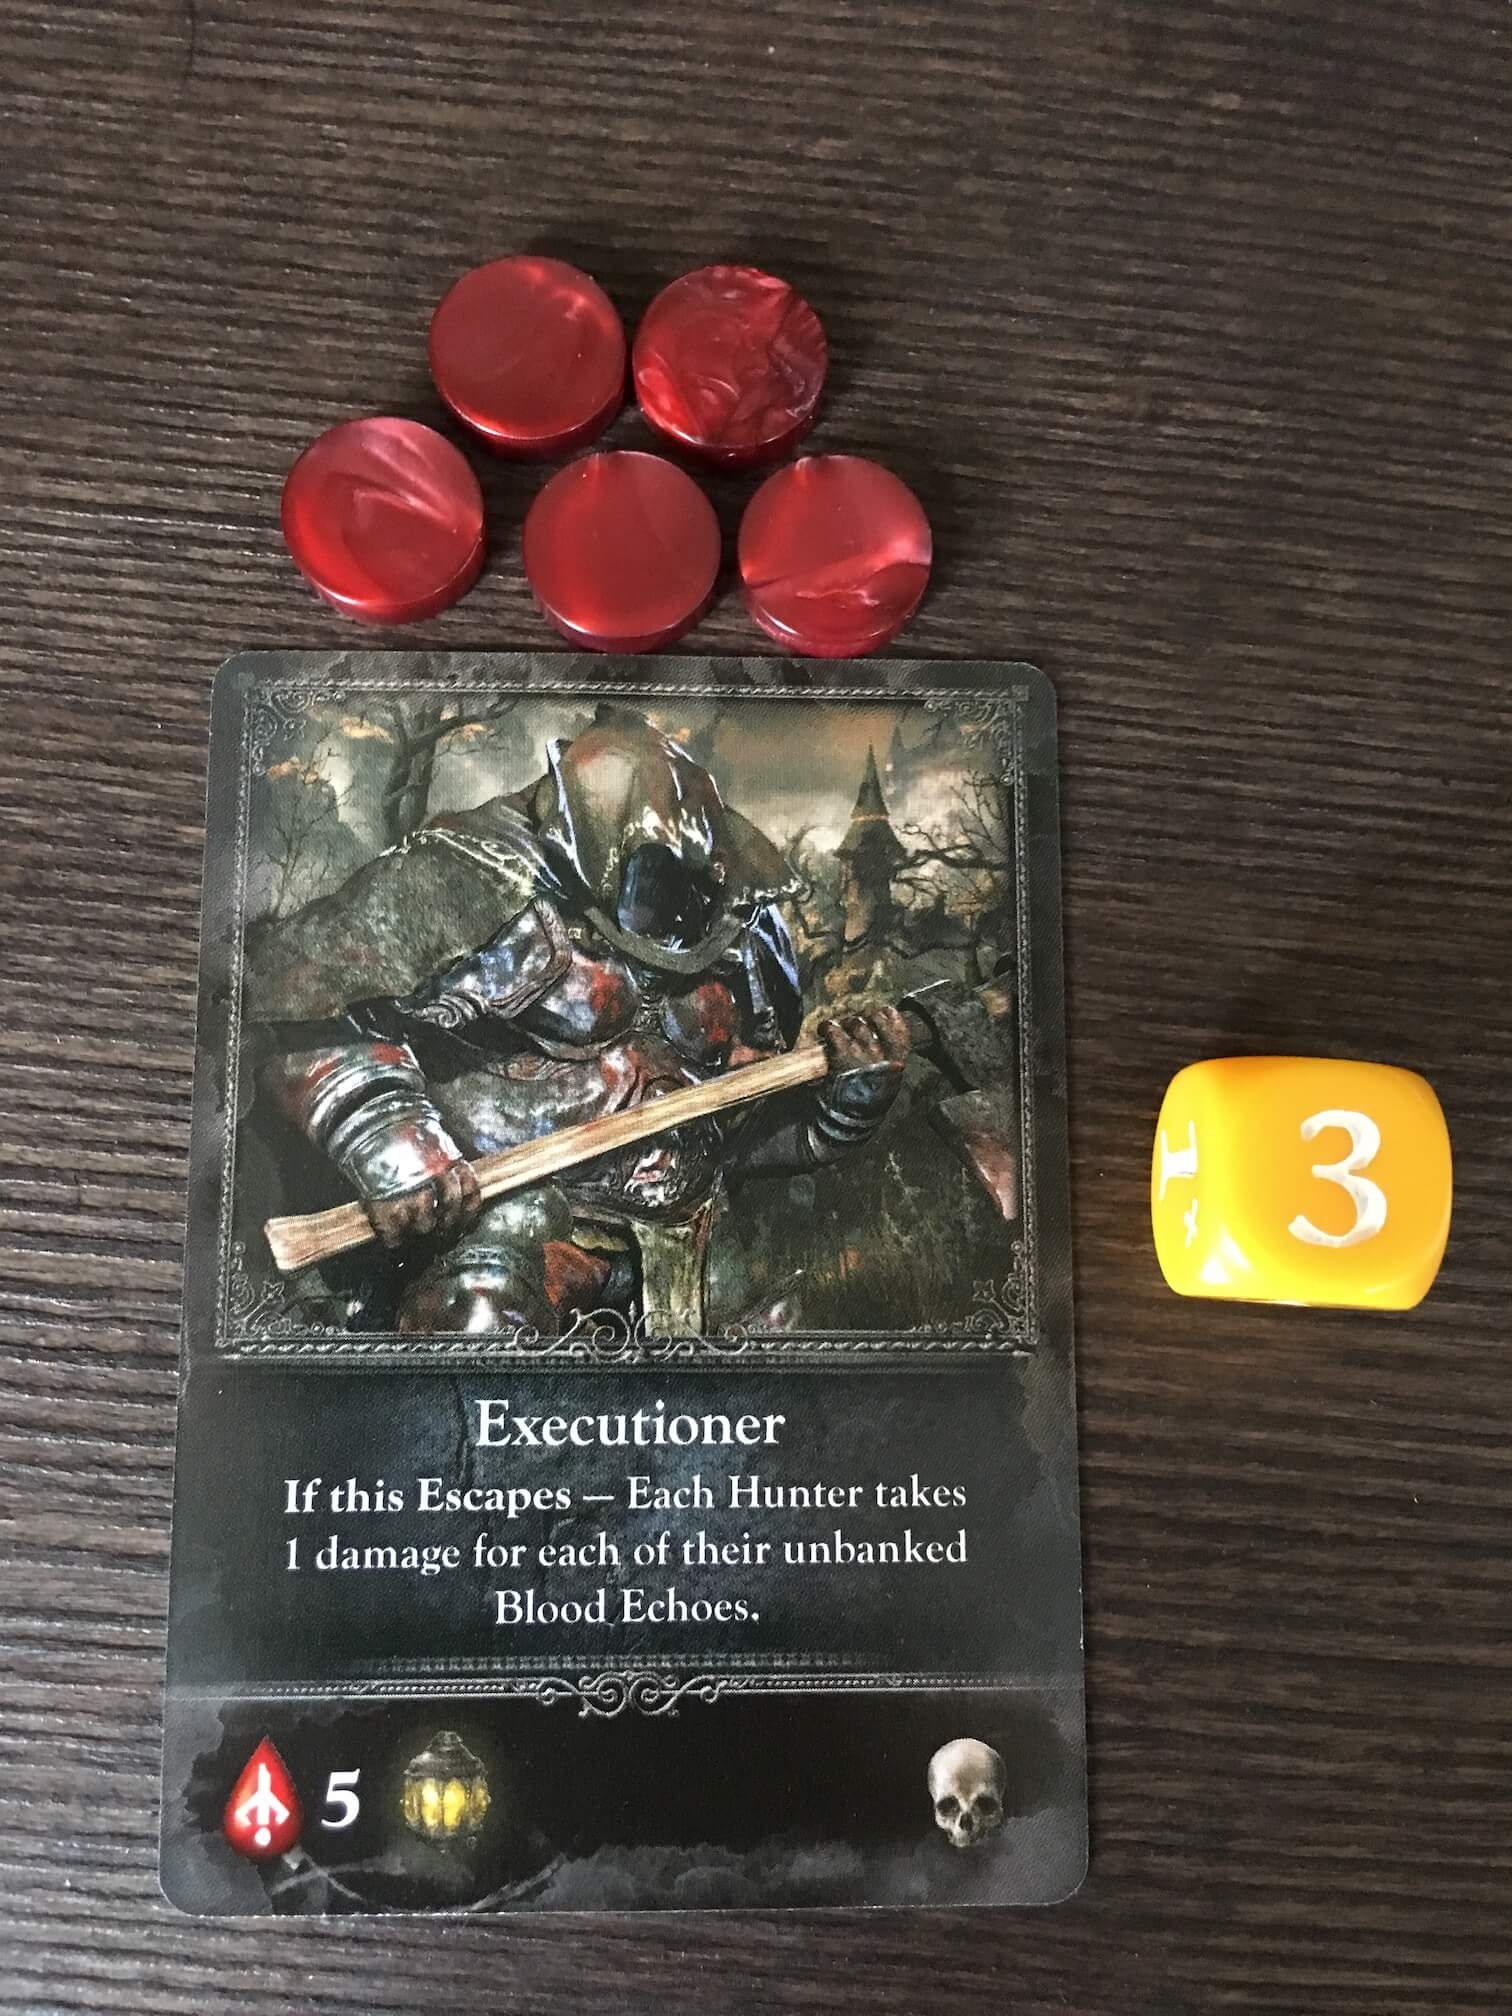 This guy has four blood echoes up for grabs, and he rolls a yellow die. Defeat him and you'll get a skull trophy.